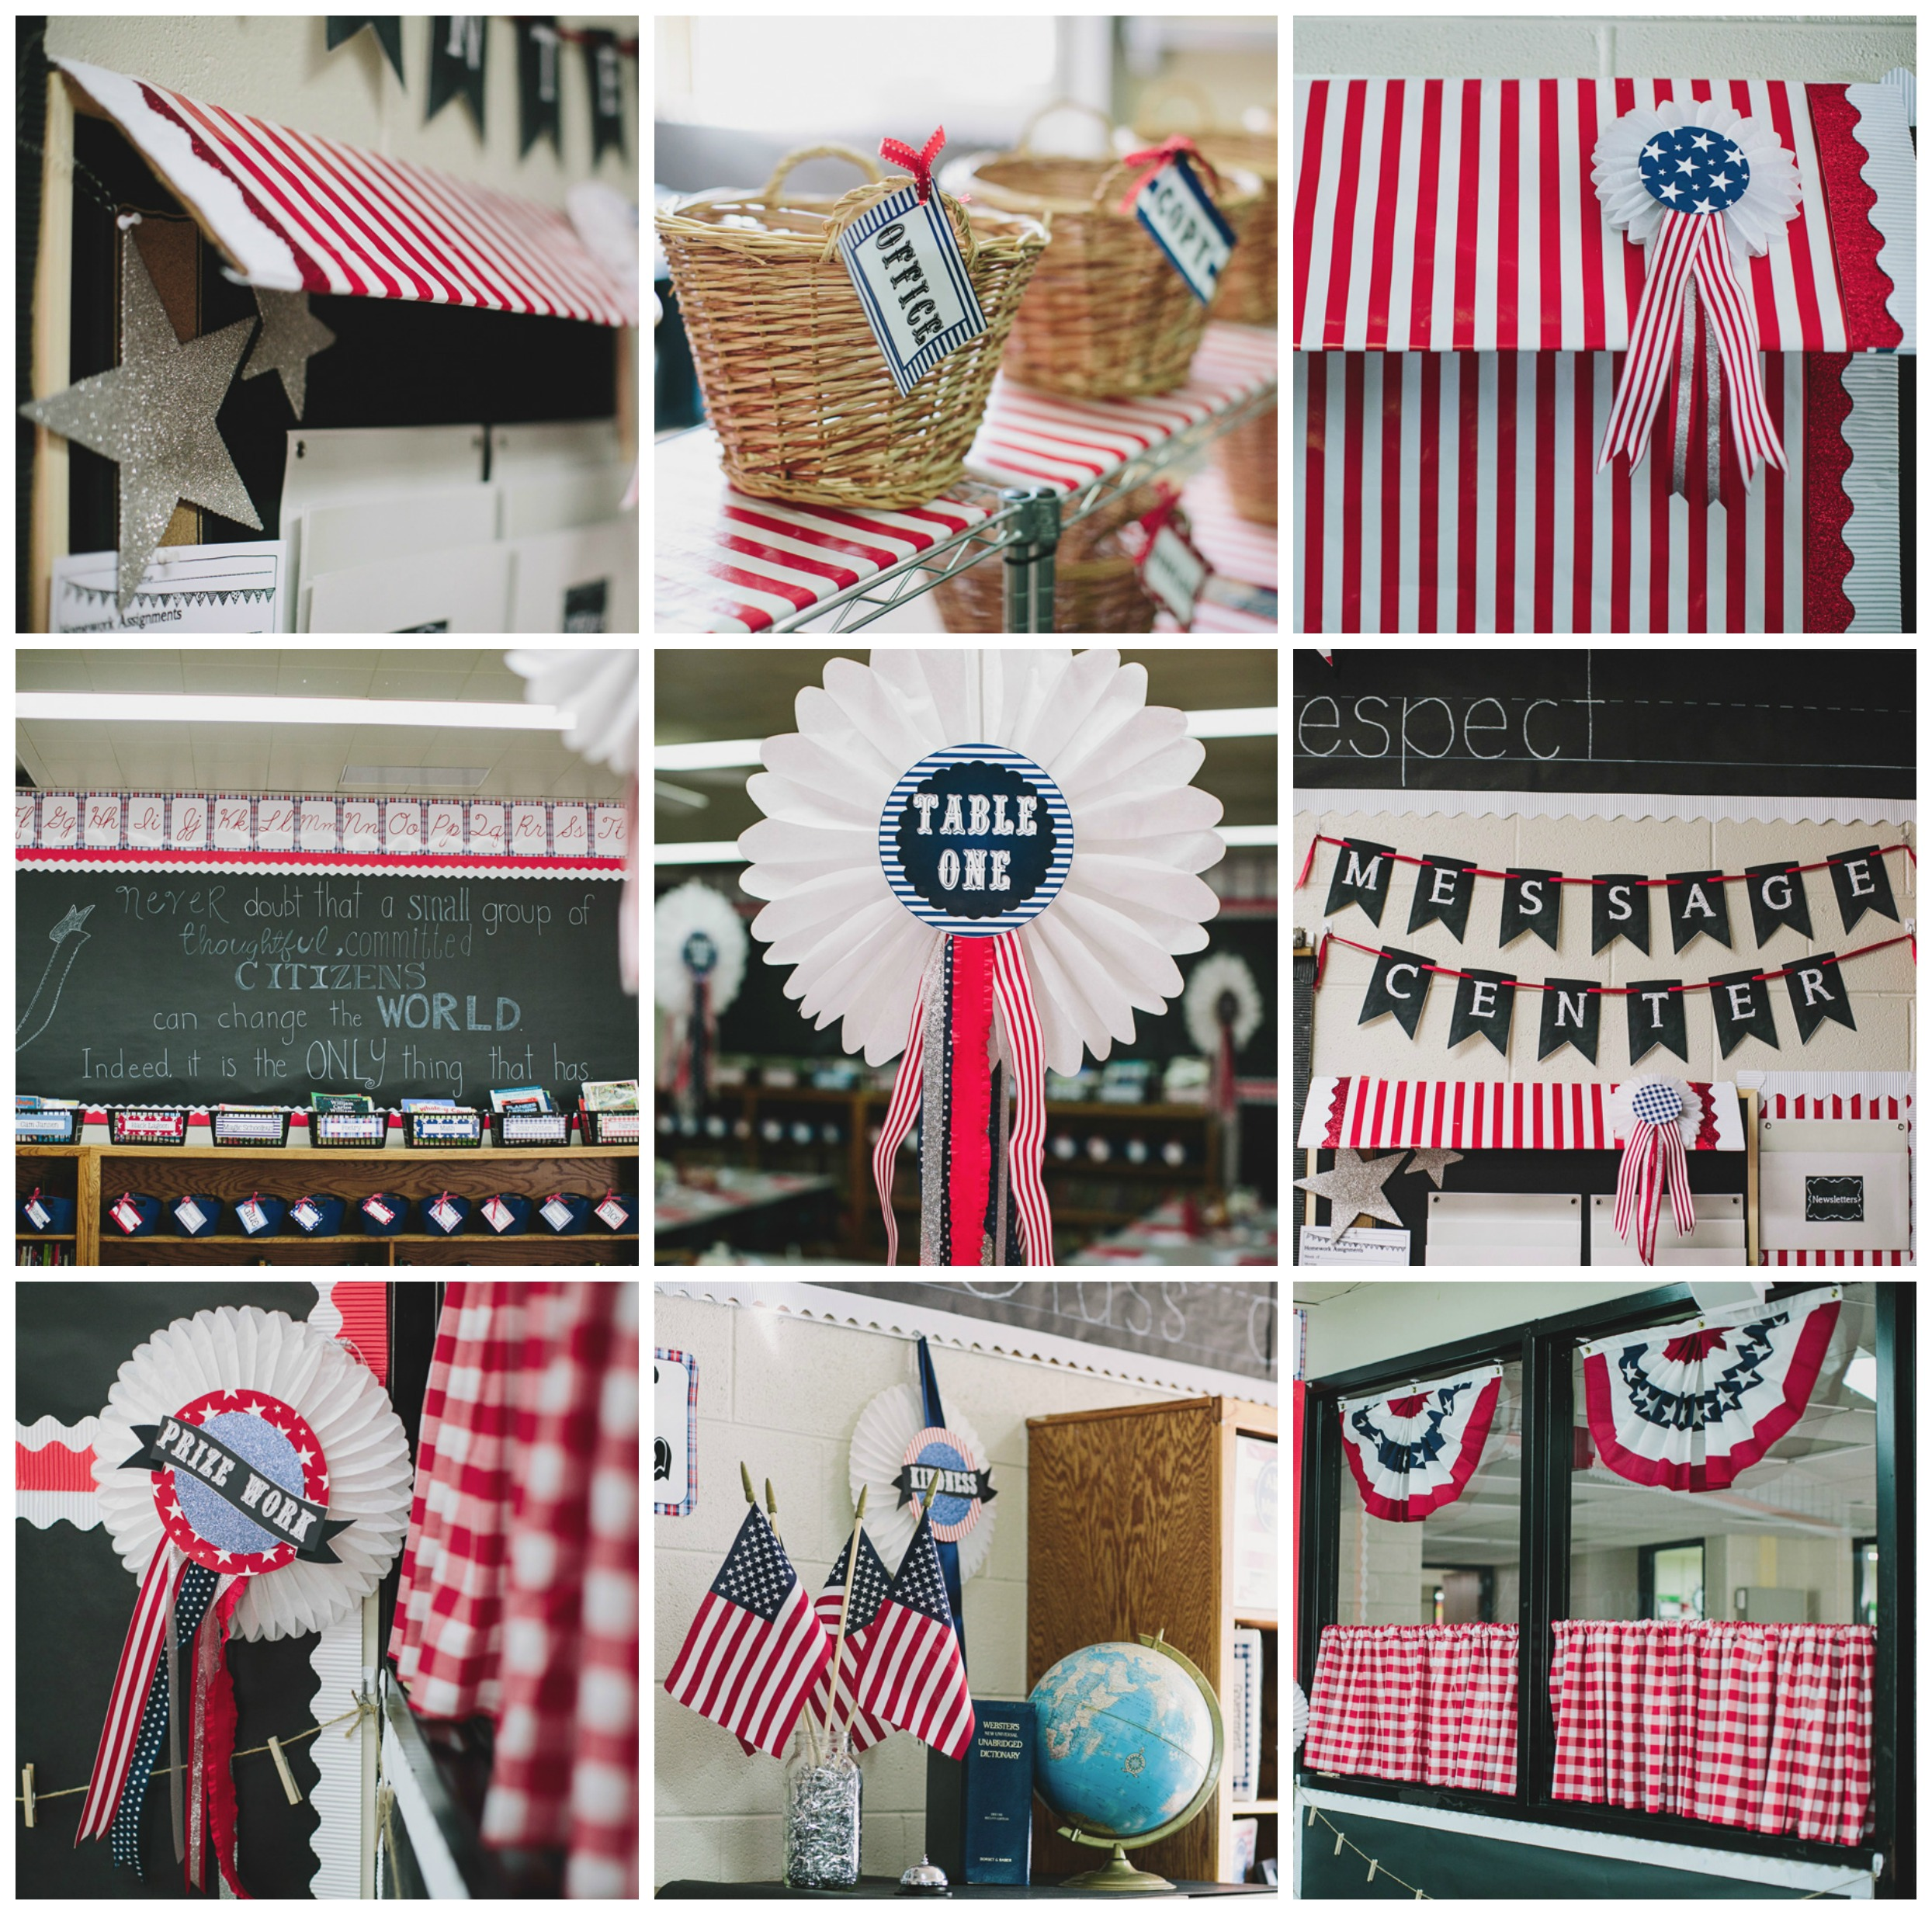 County Fair Americana red white blue classroom theme and decor by Schoolgirl Style